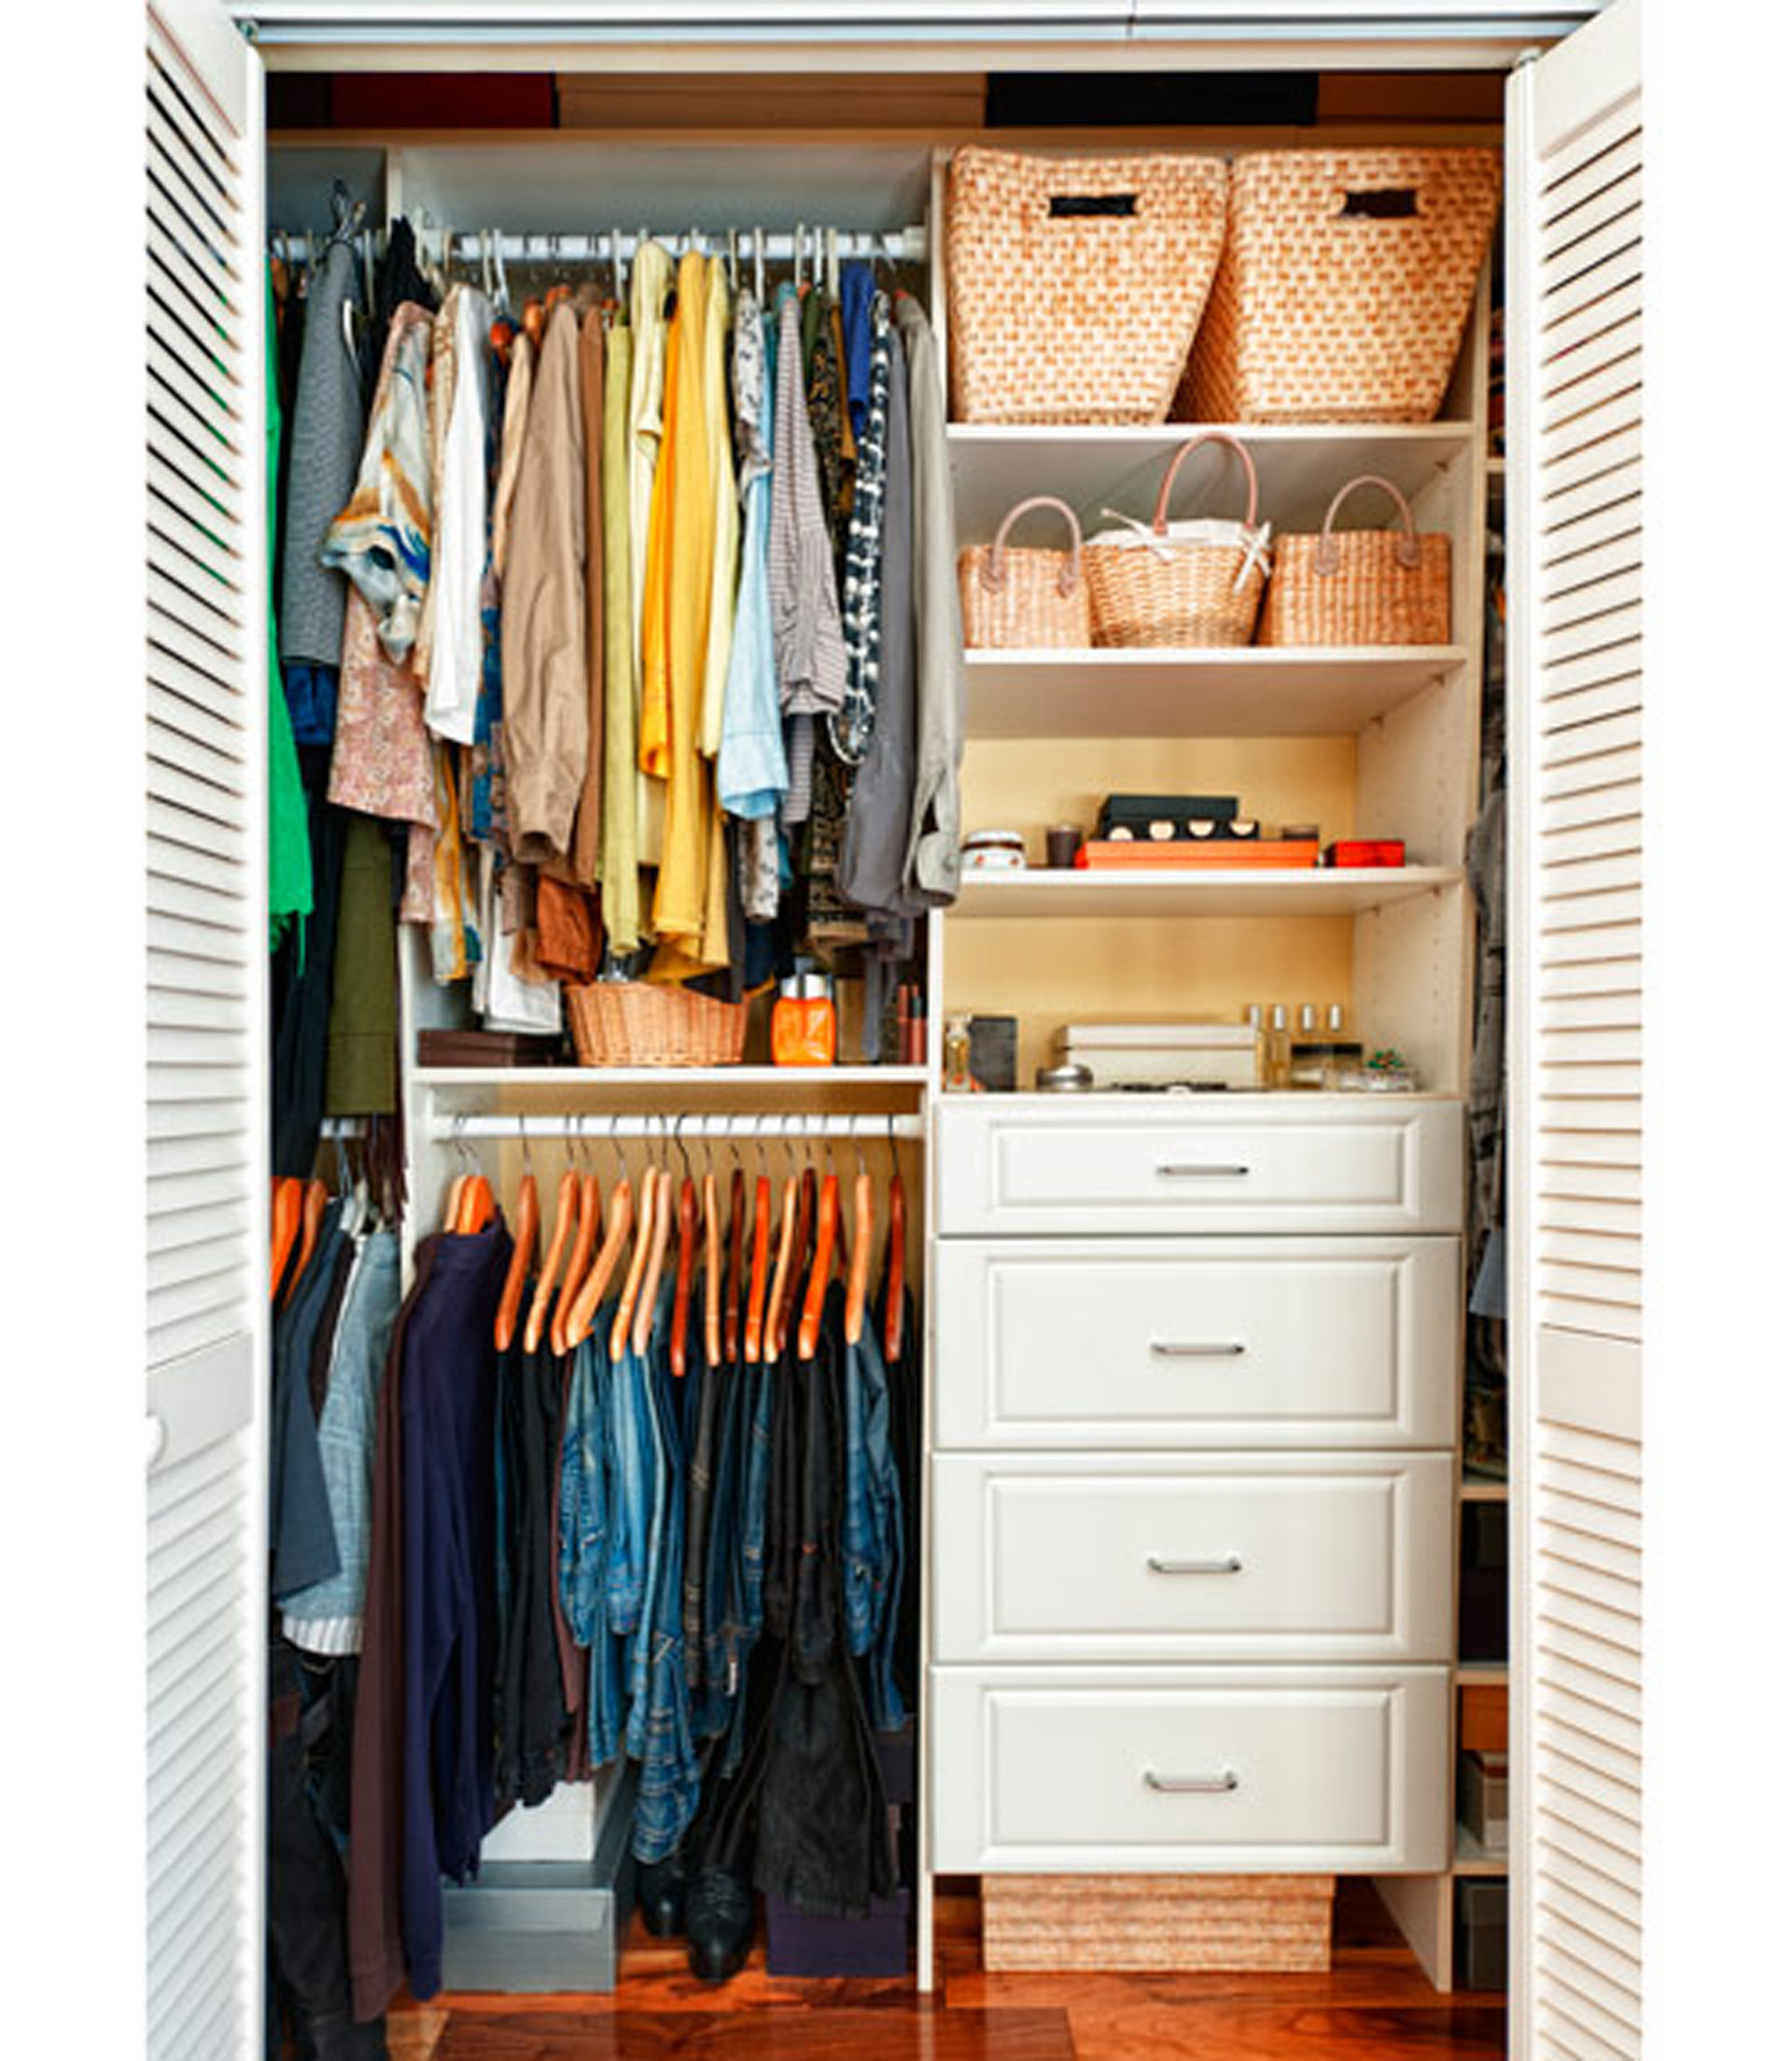 Solutions for closet solutions and organization for Storage solutions for small closets